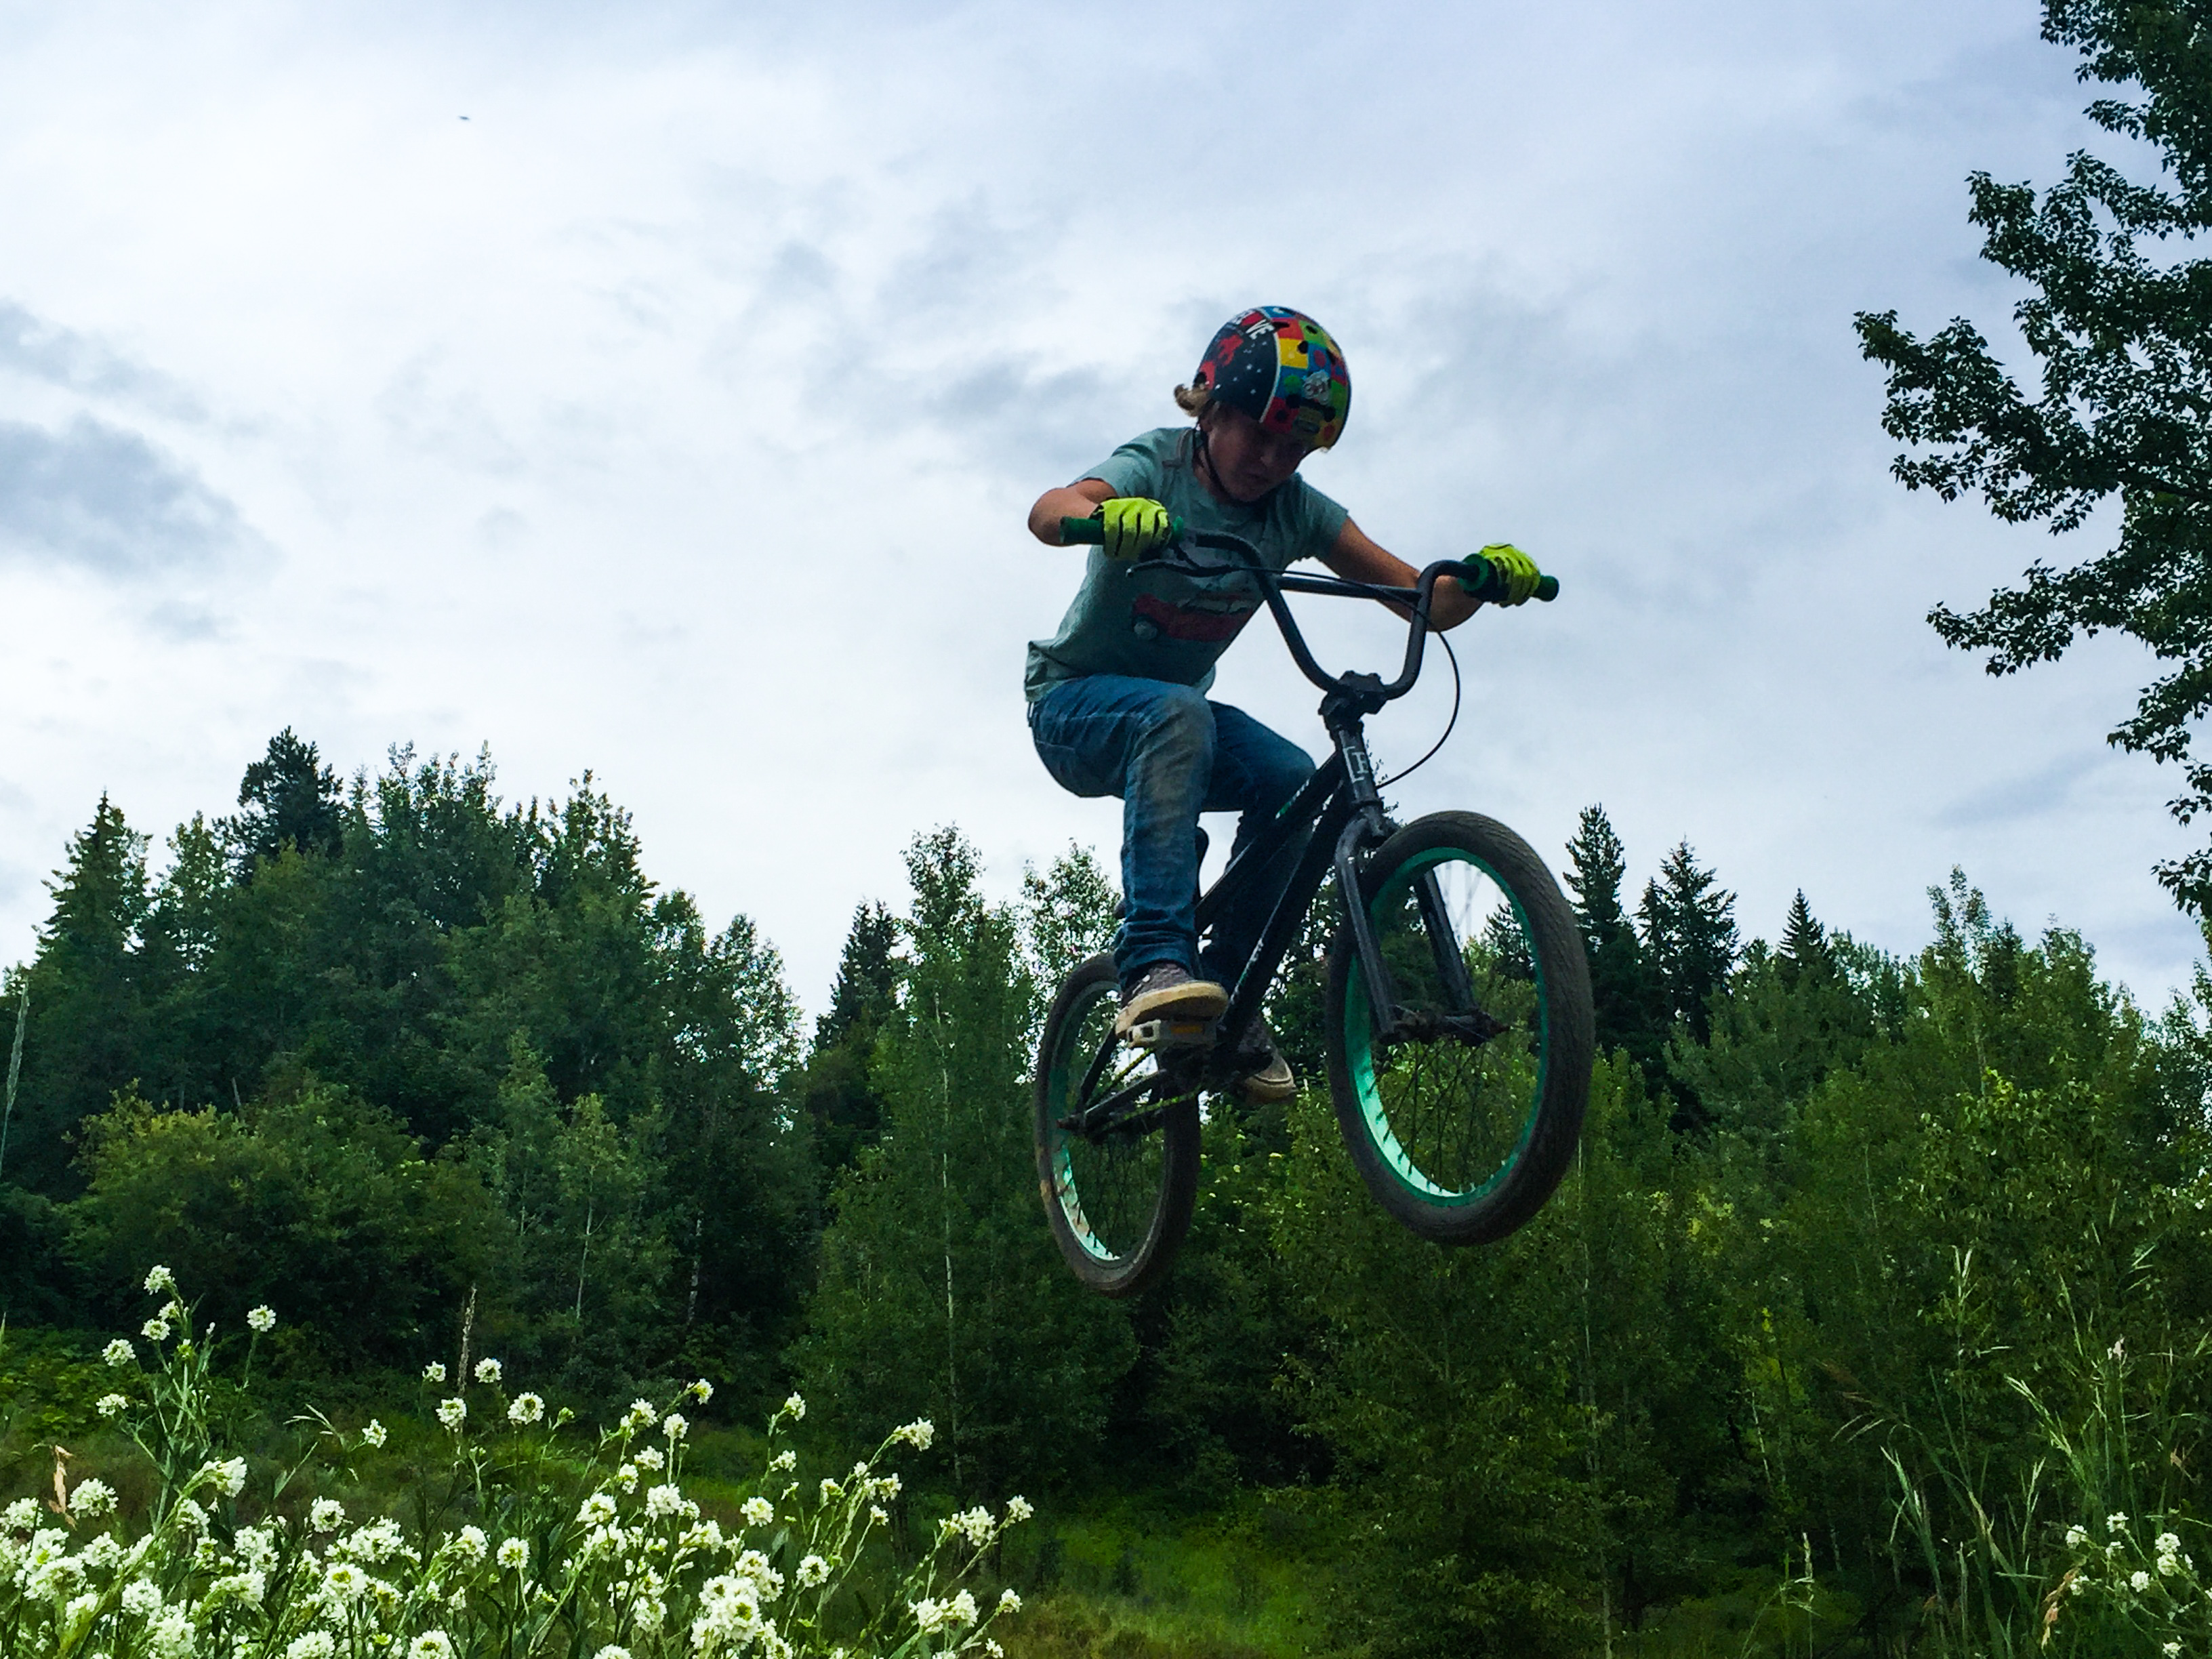 Up and over the table top. Rossland, BC bike park.